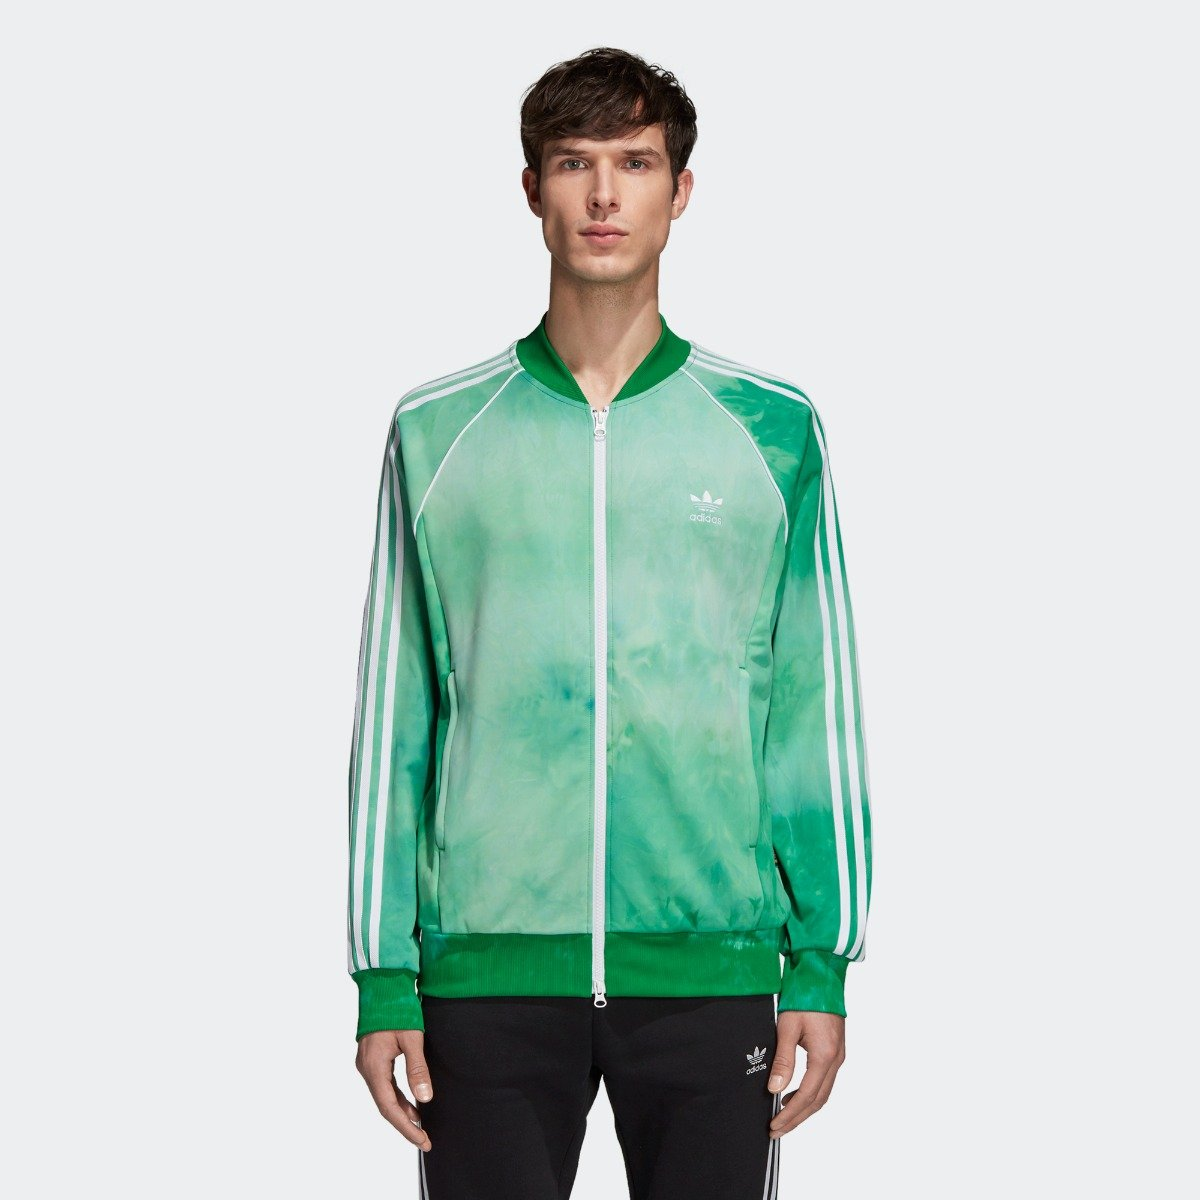 Desalentar virtual Desviar  Men's adidas Originals Pharrell Williams Hu Holi SST Track Jacket Green  CW9104 | Chicago City Sports